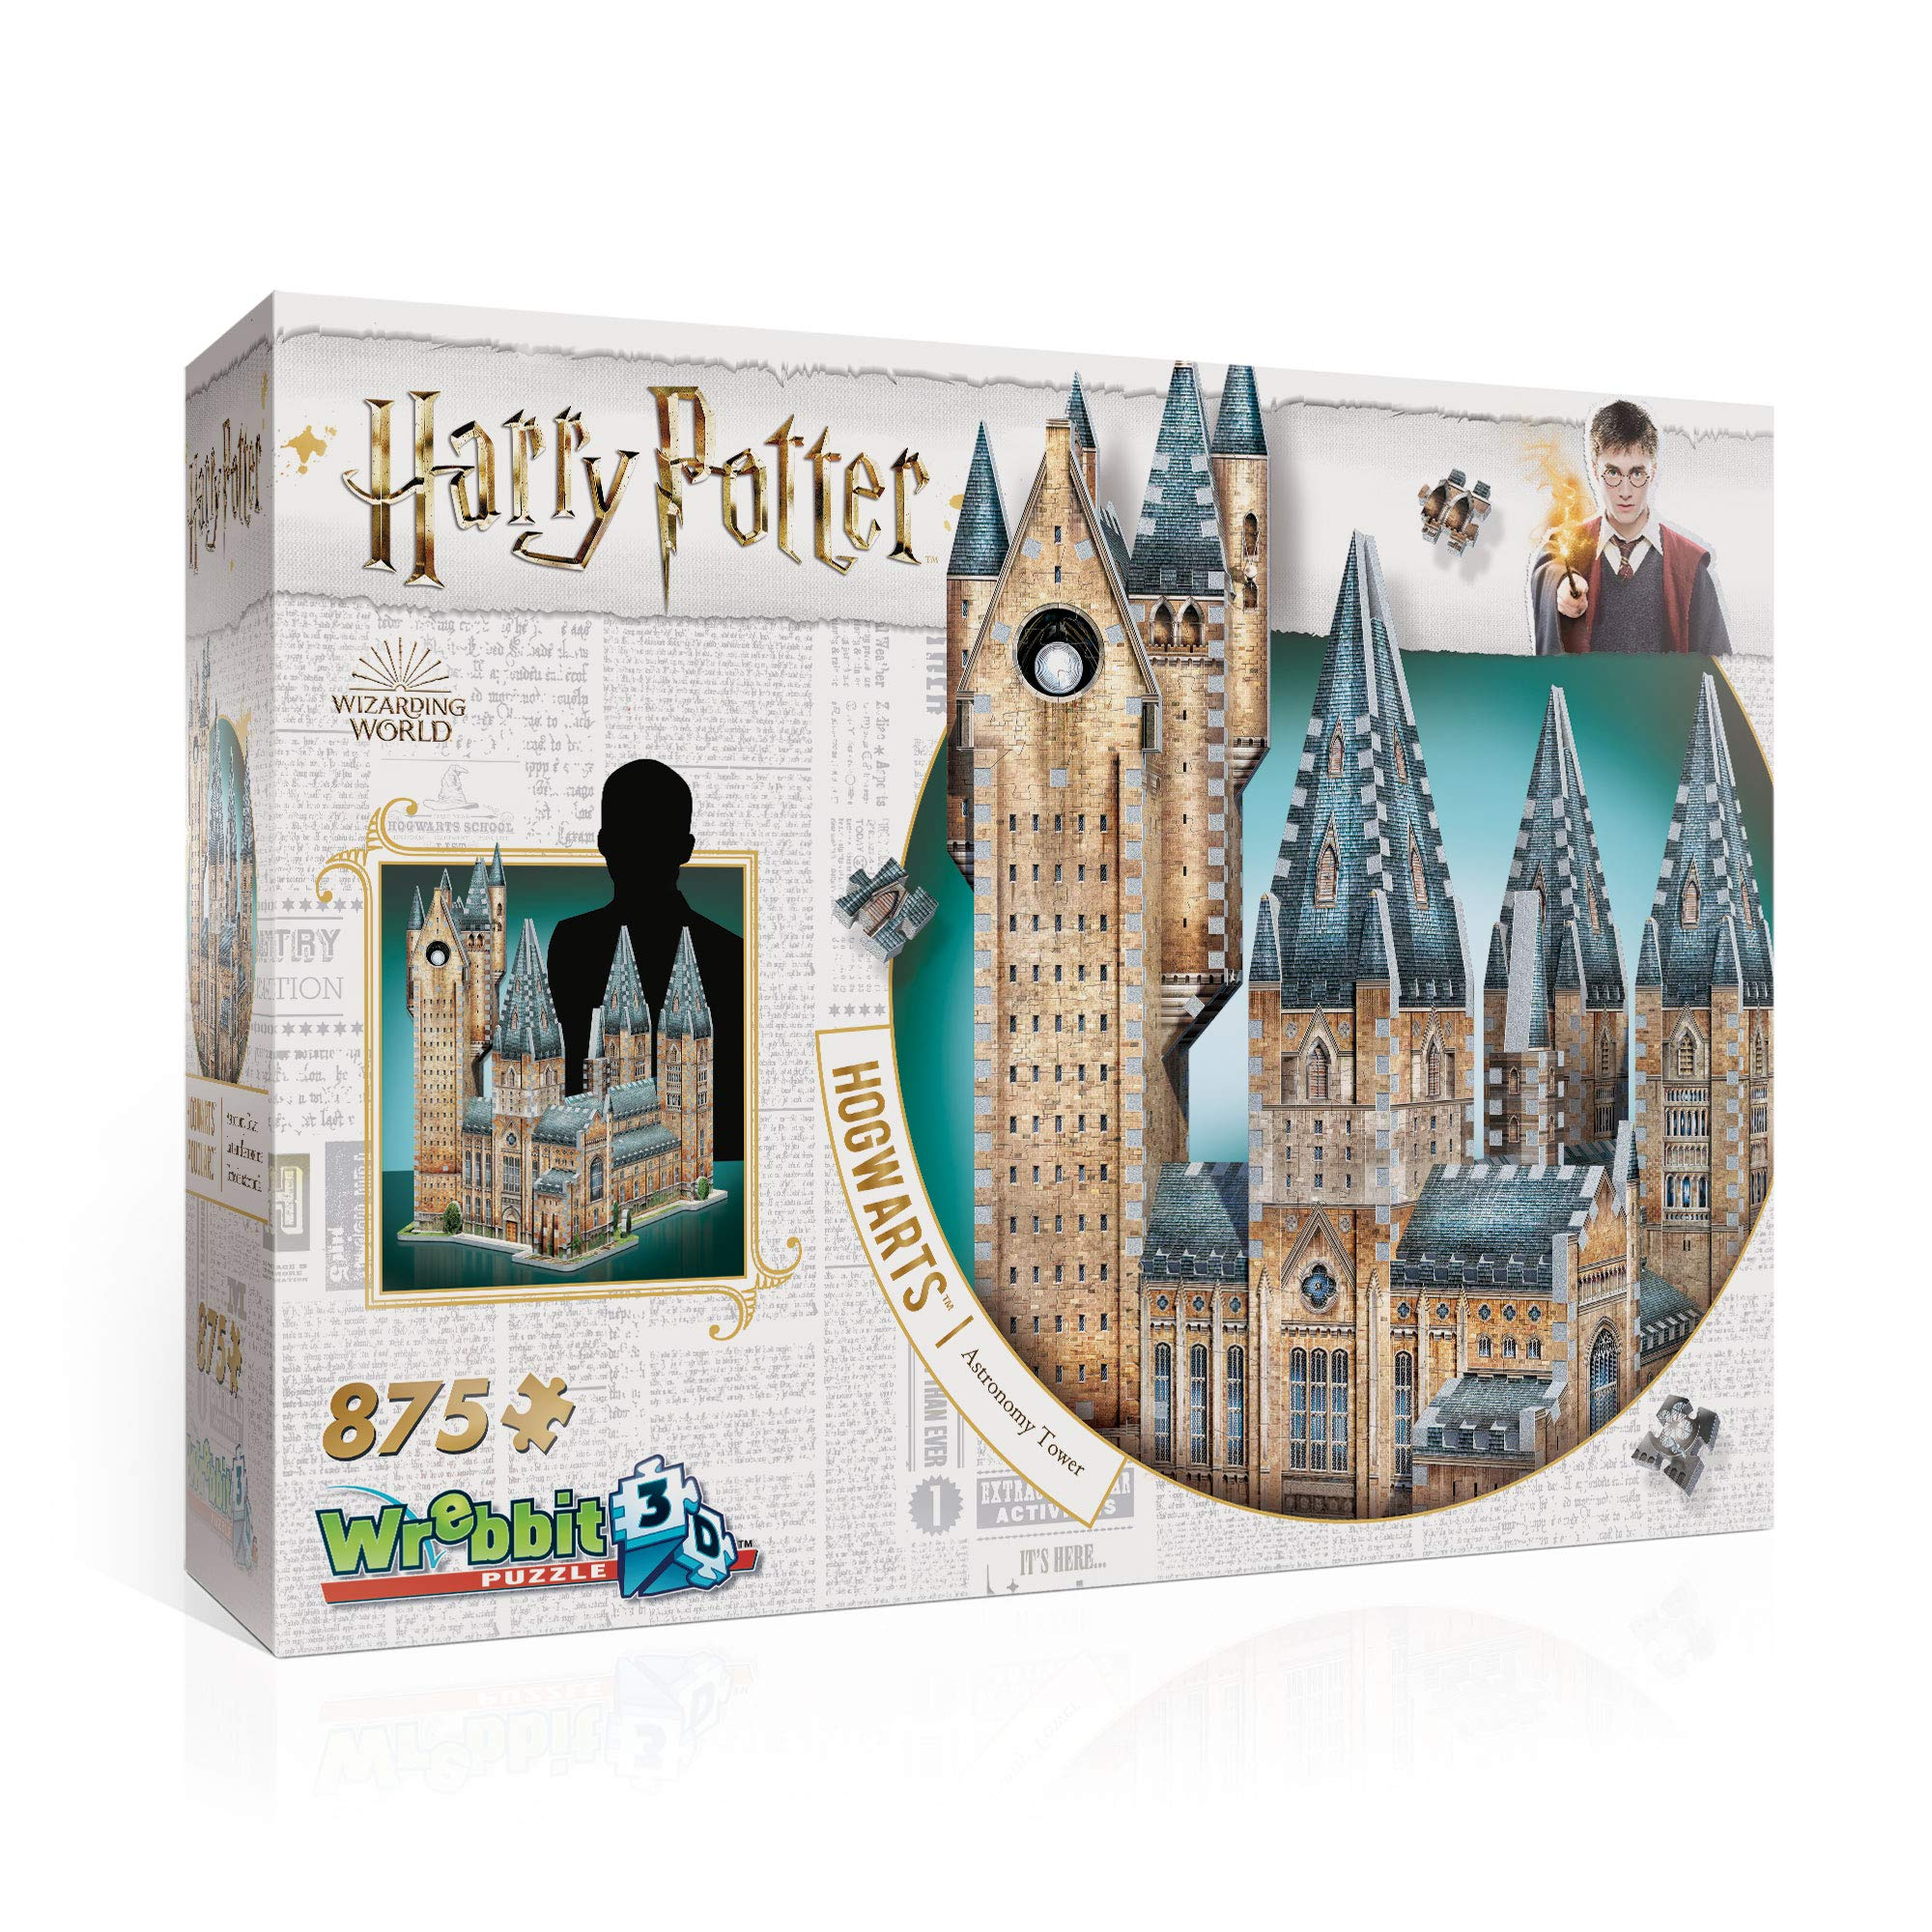 Hogwarts Astronomy Tower 3D Jigsaw Puzzle (875 pieces) by WREBBIT 3D